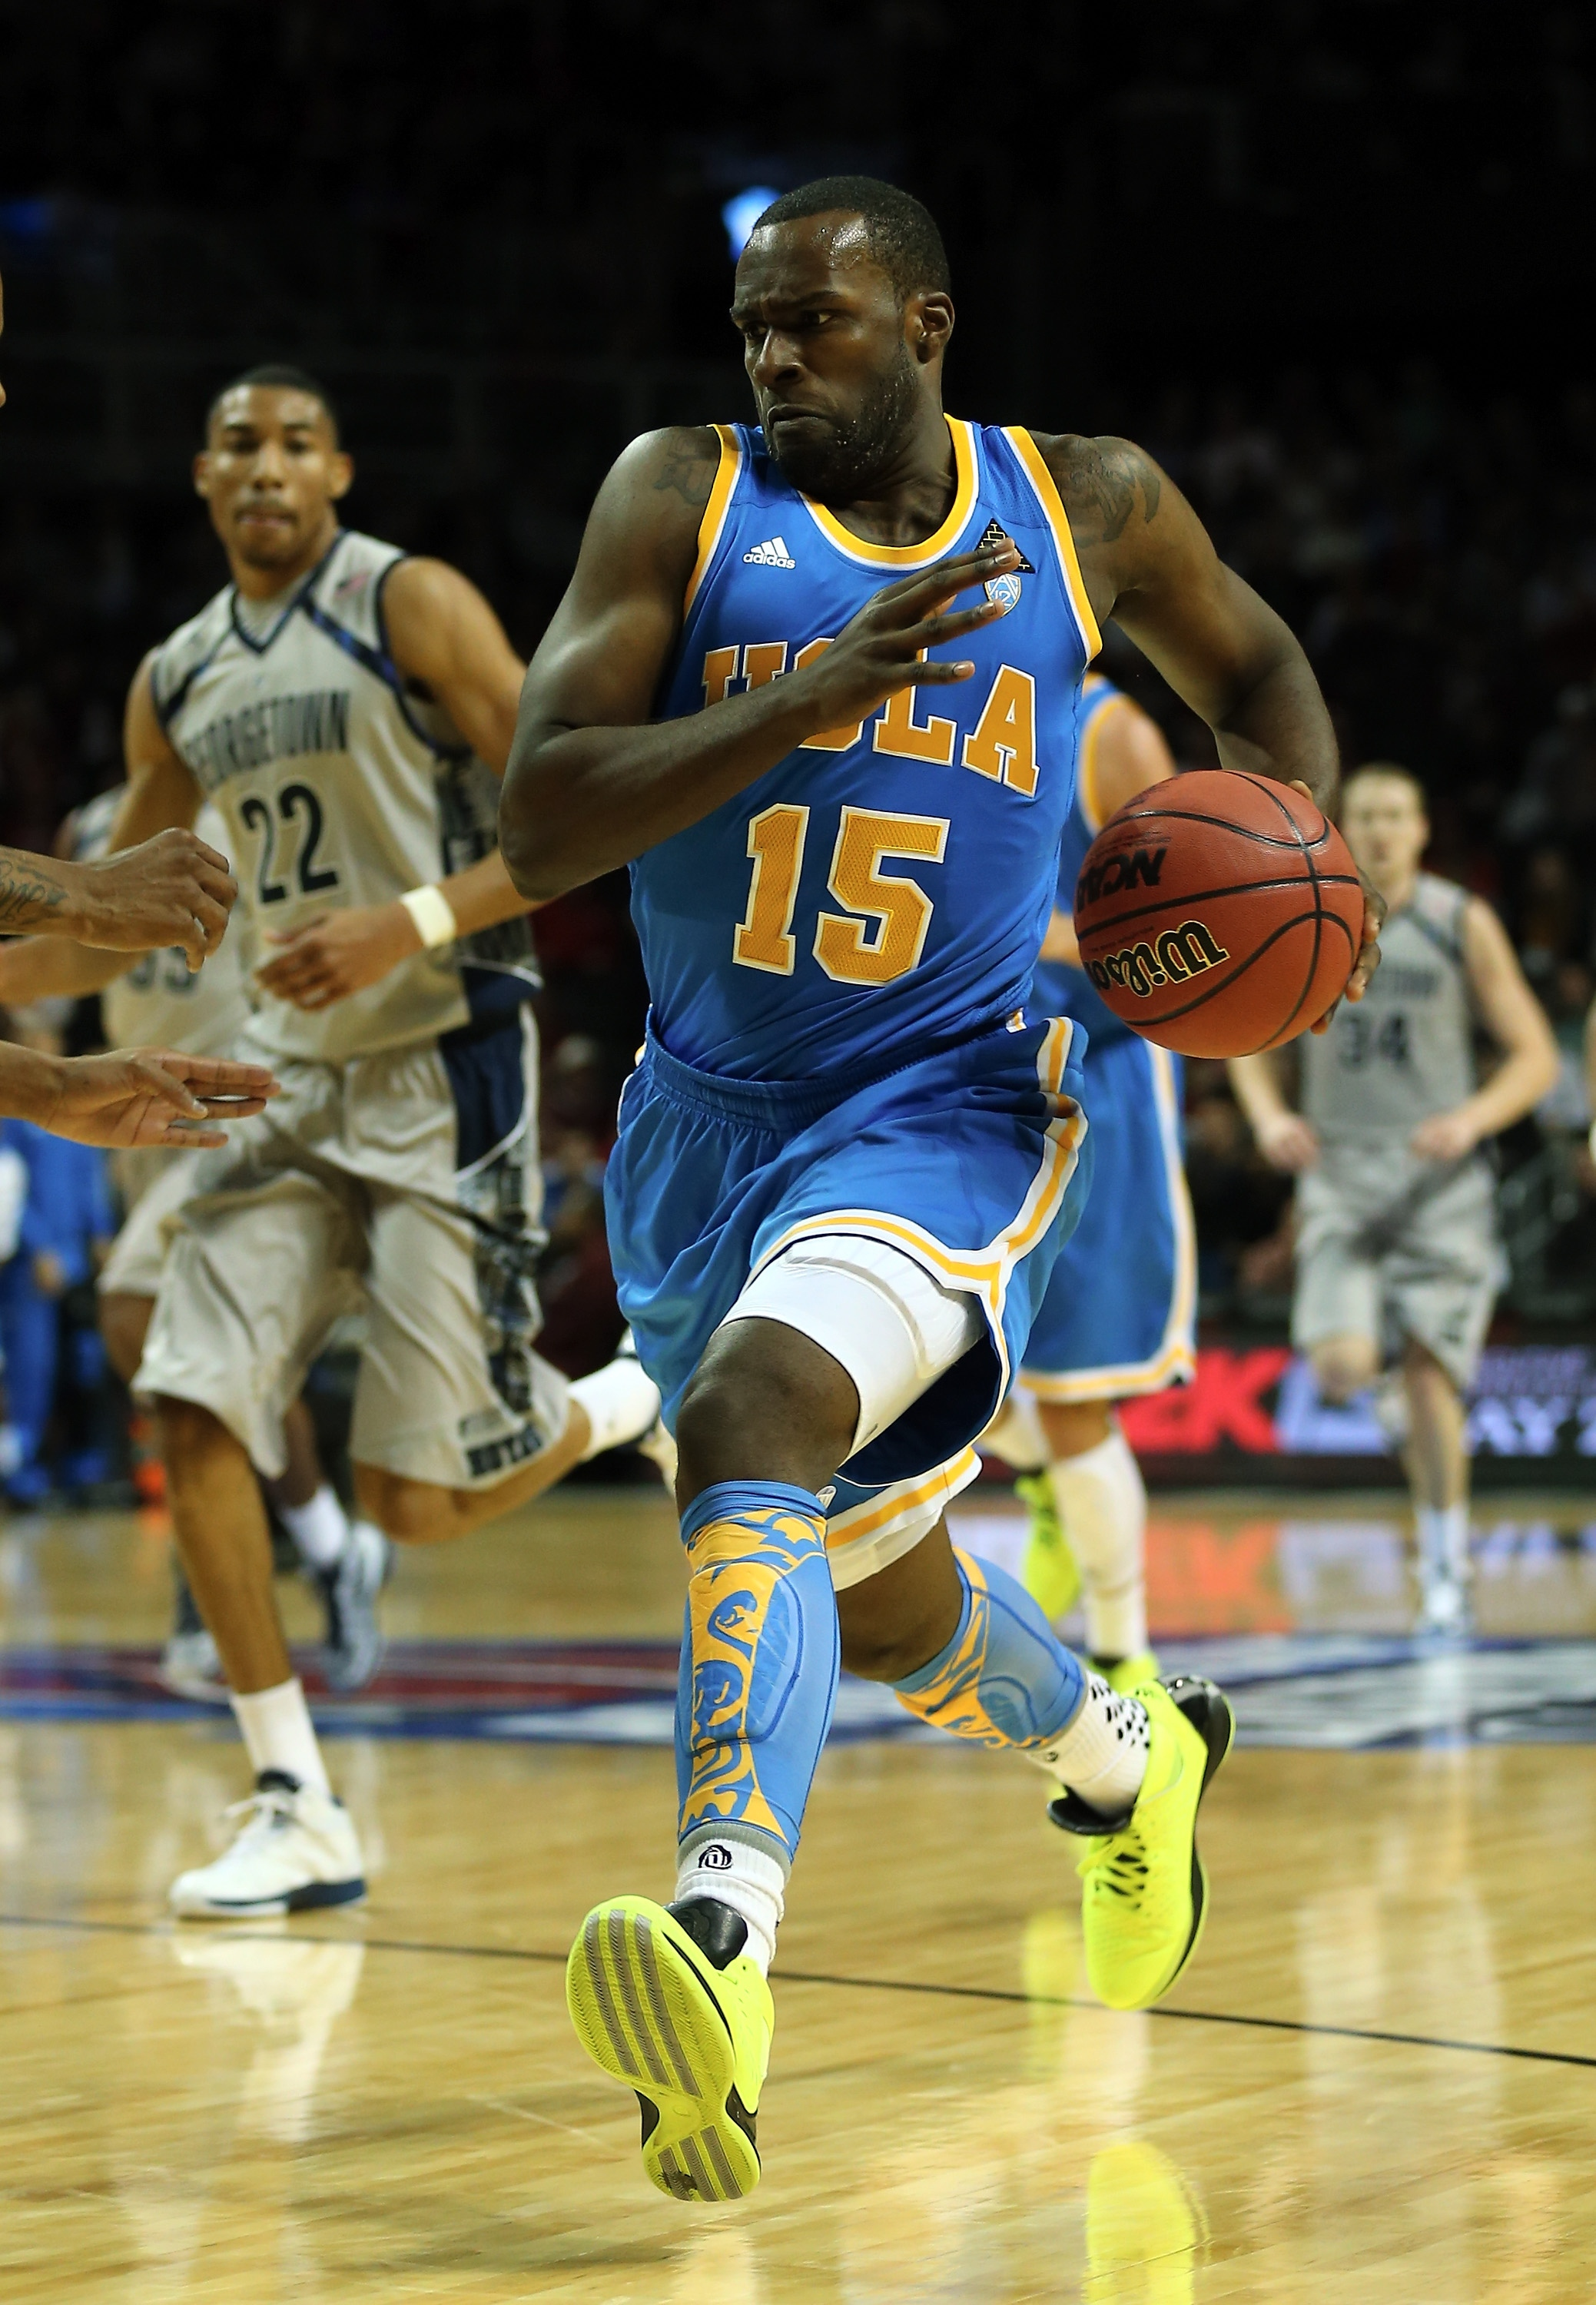 Shabazz Muhammad scored 15 points in his collegiate debut for UCLA. (Getty Images)